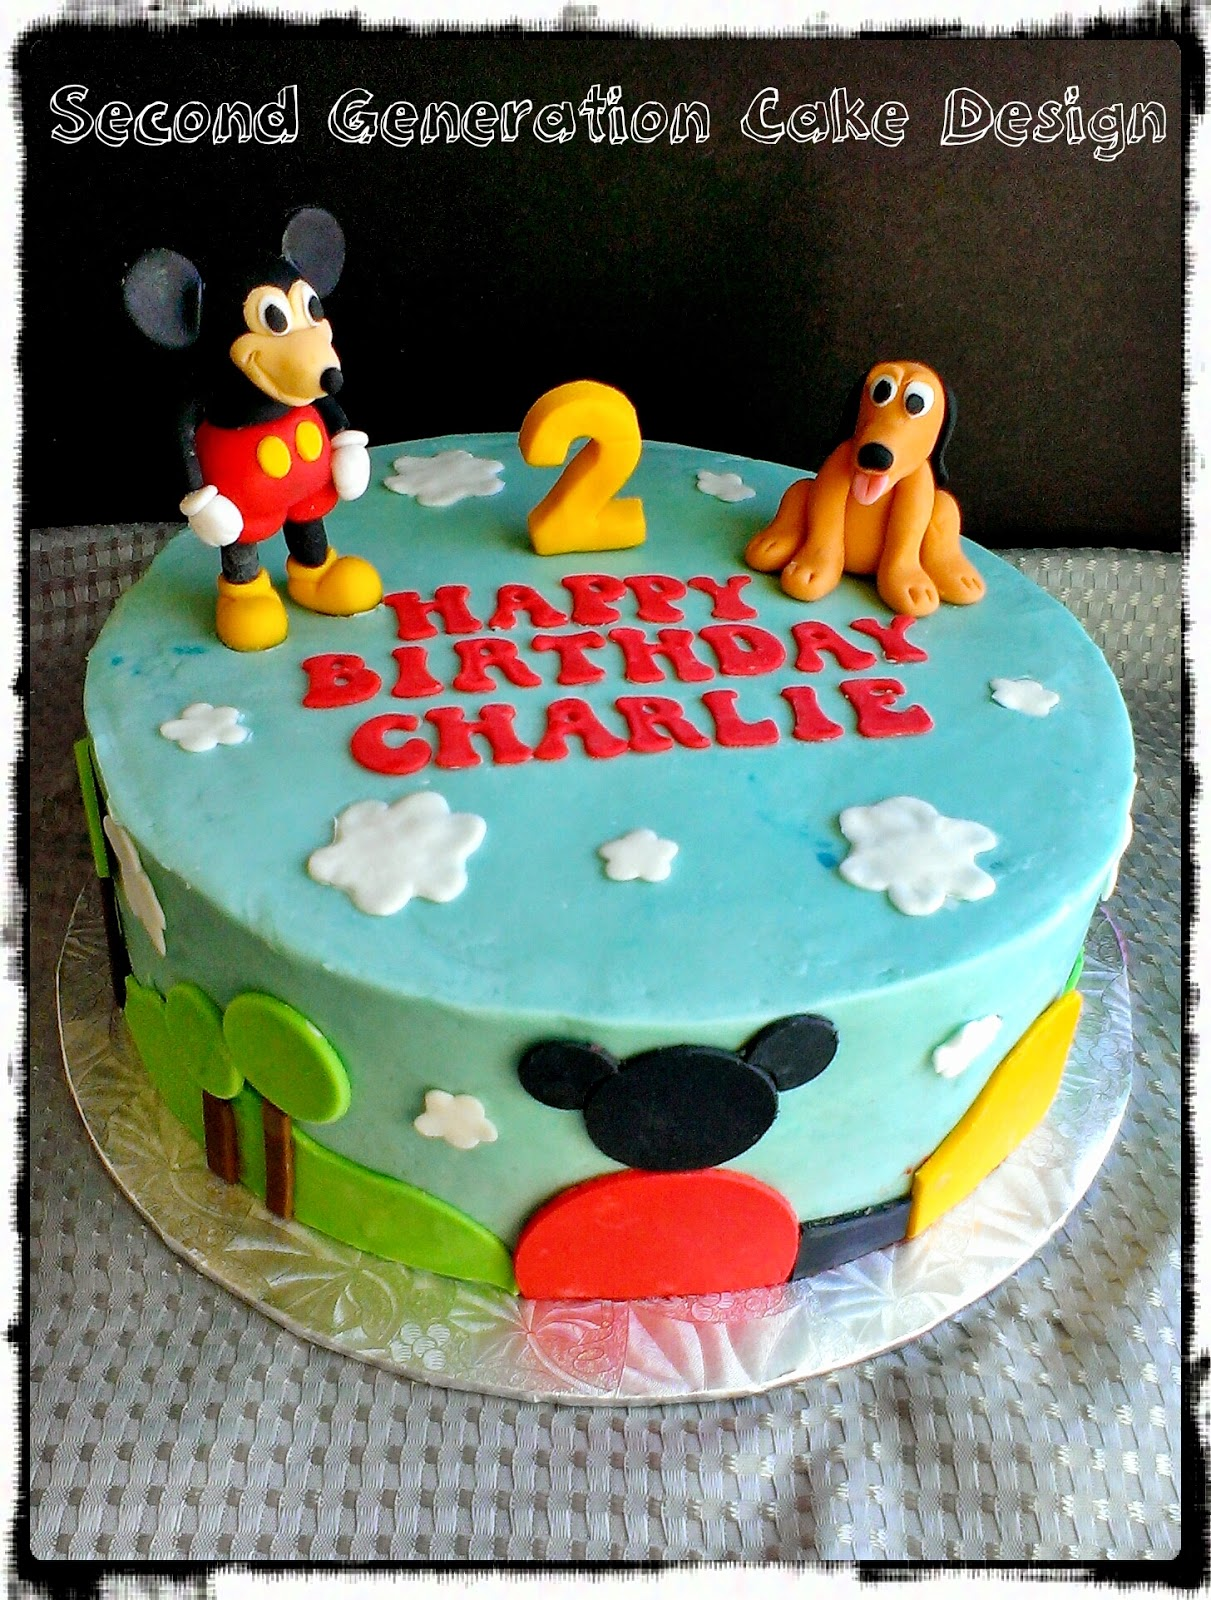 Second Generation Cake Design Mickey Mouse Clubhouse Birthday Cake